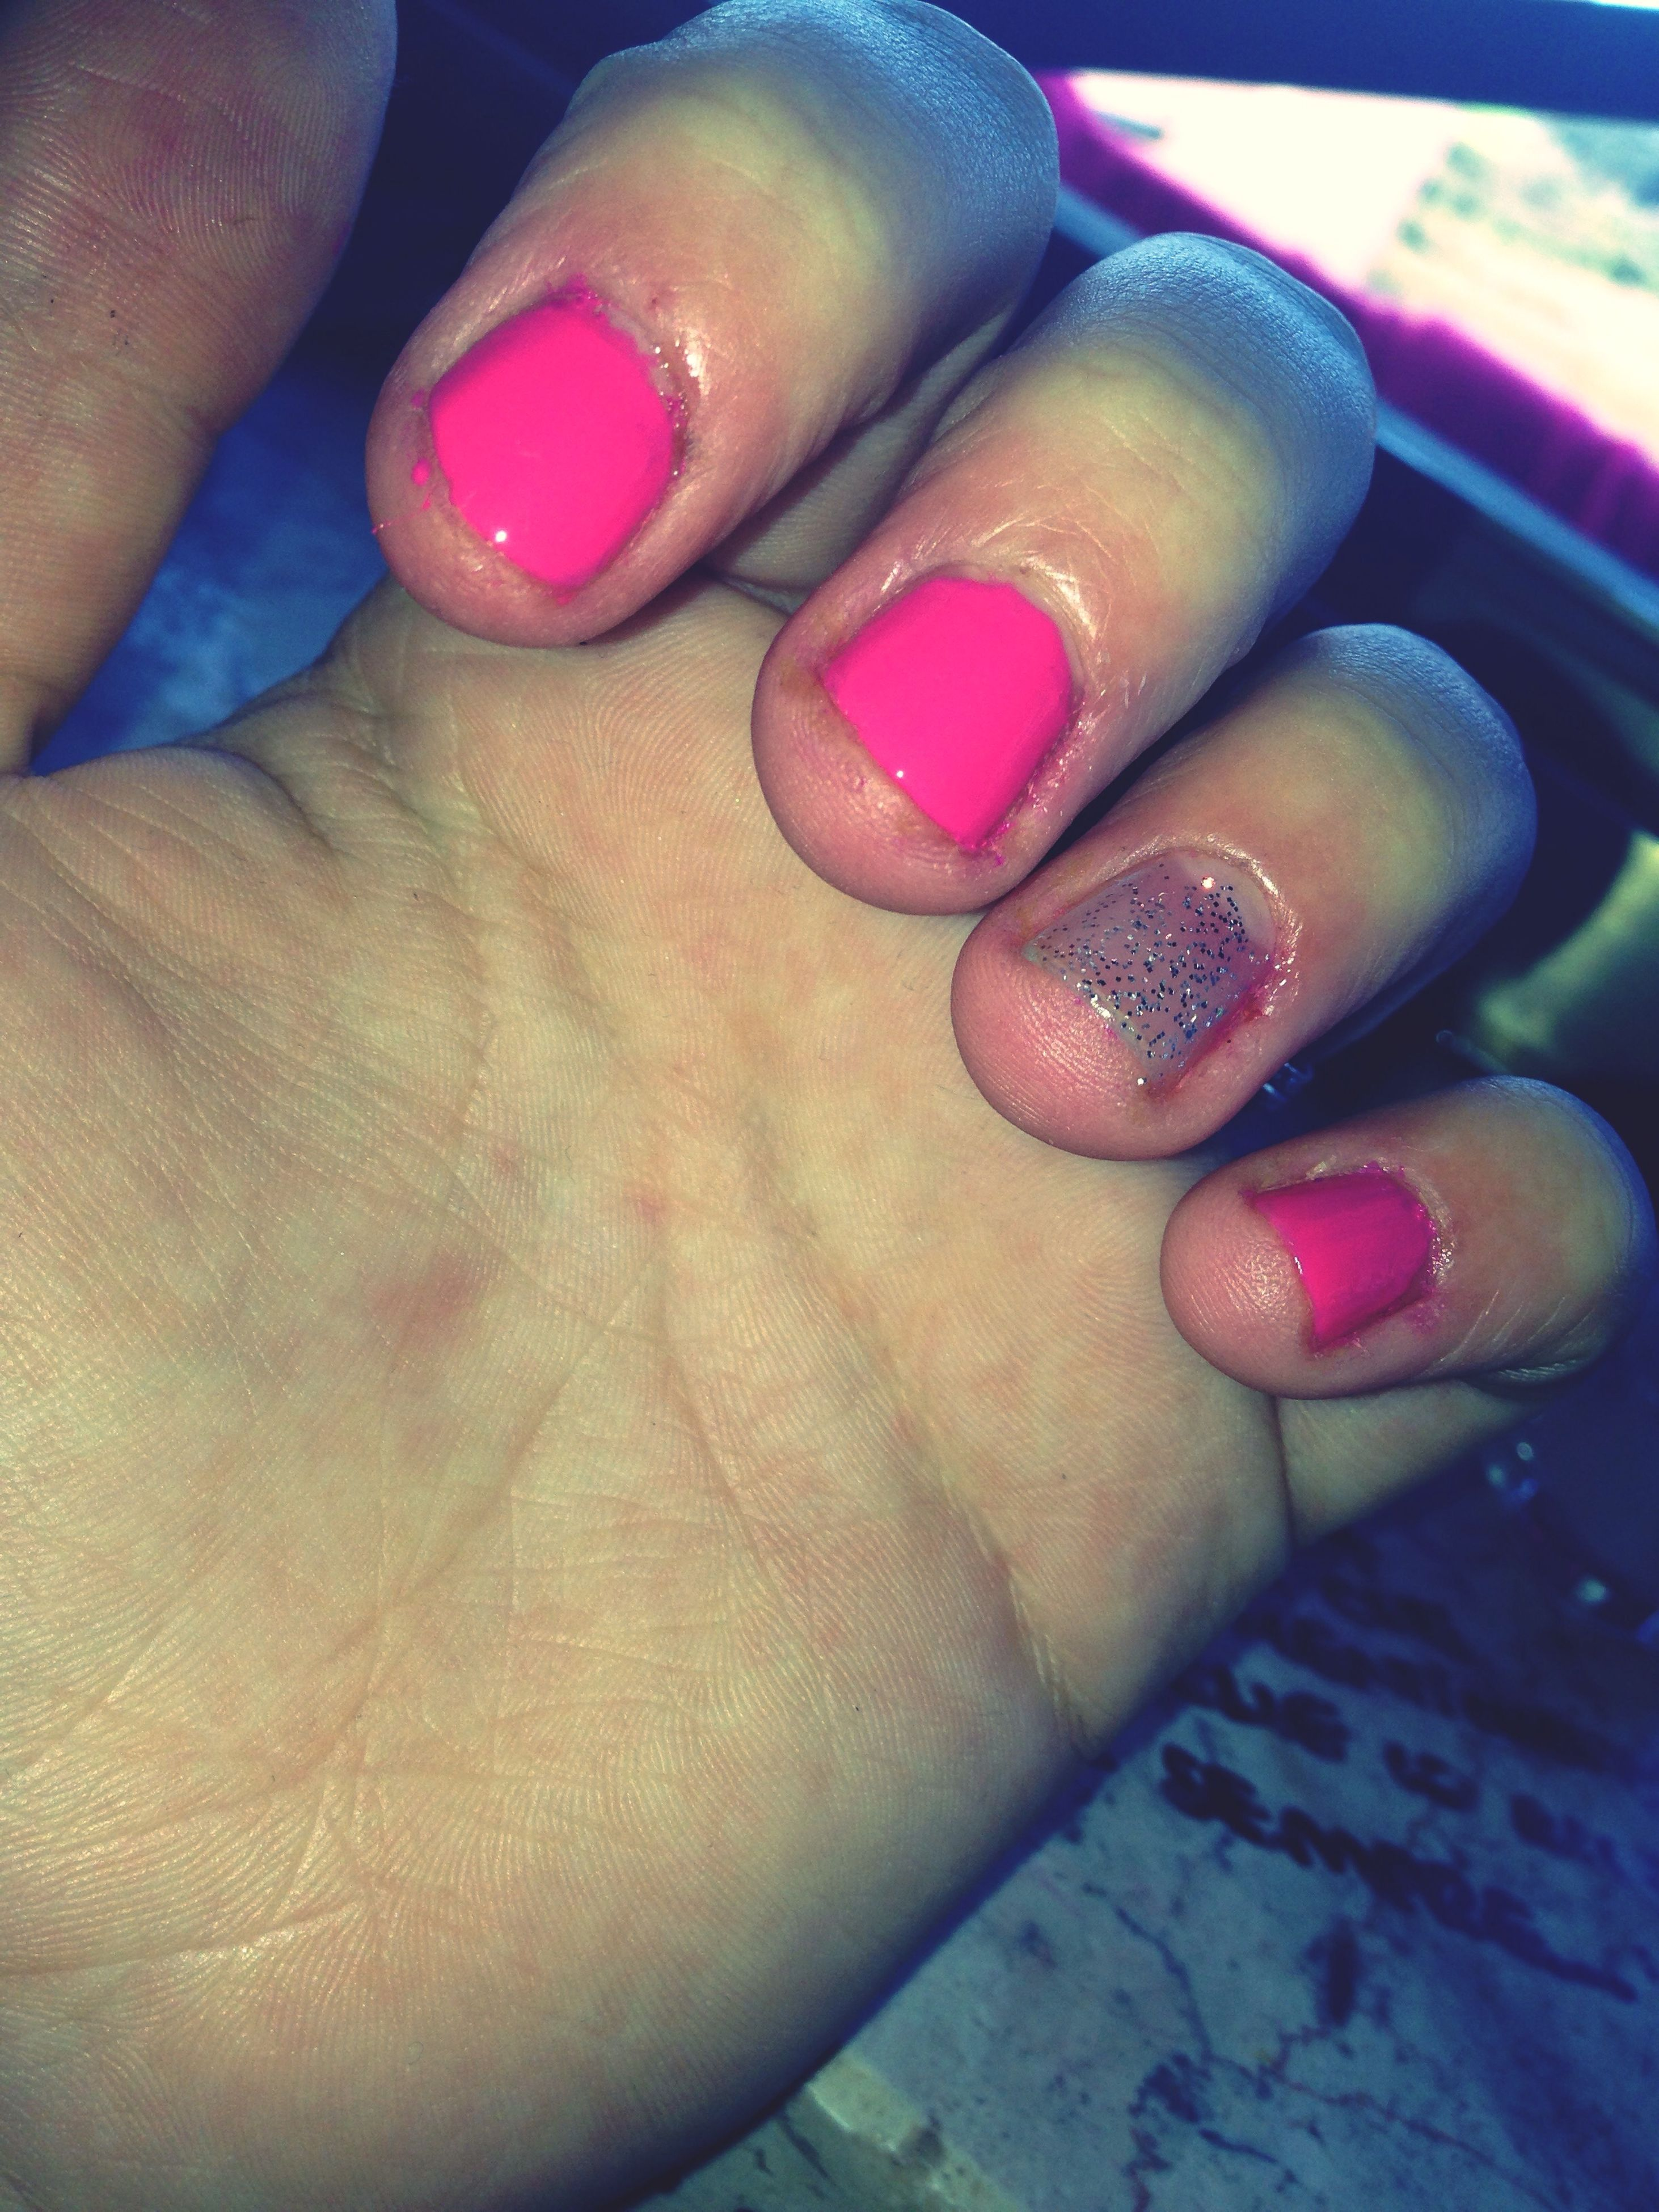 person, part of, cropped, indoors, holding, unrecognizable person, close-up, human finger, high angle view, lifestyles, multi colored, leisure activity, variation, personal perspective, nail polish